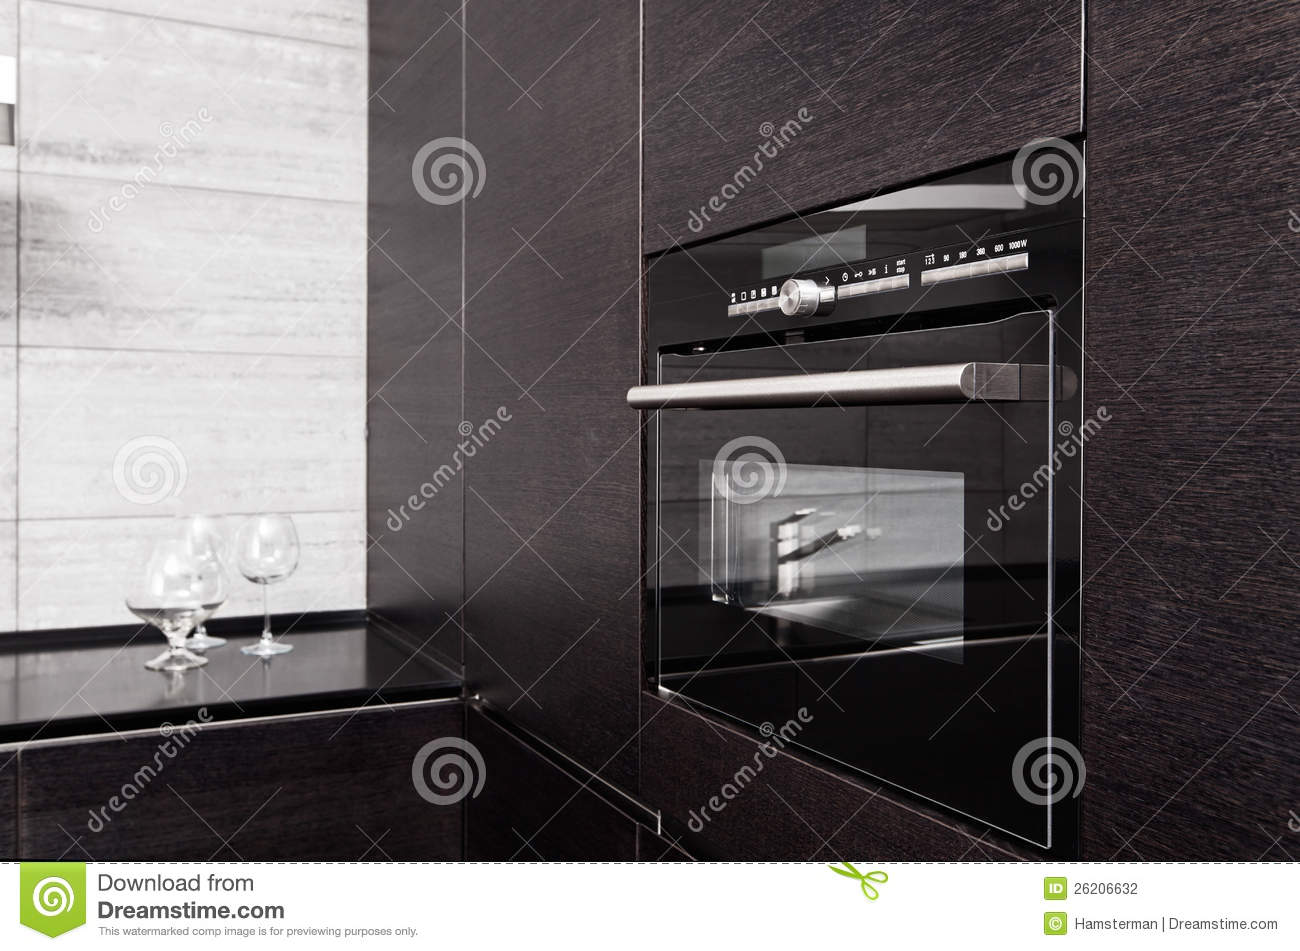 Hardwood kitchen with build-in microwave oven